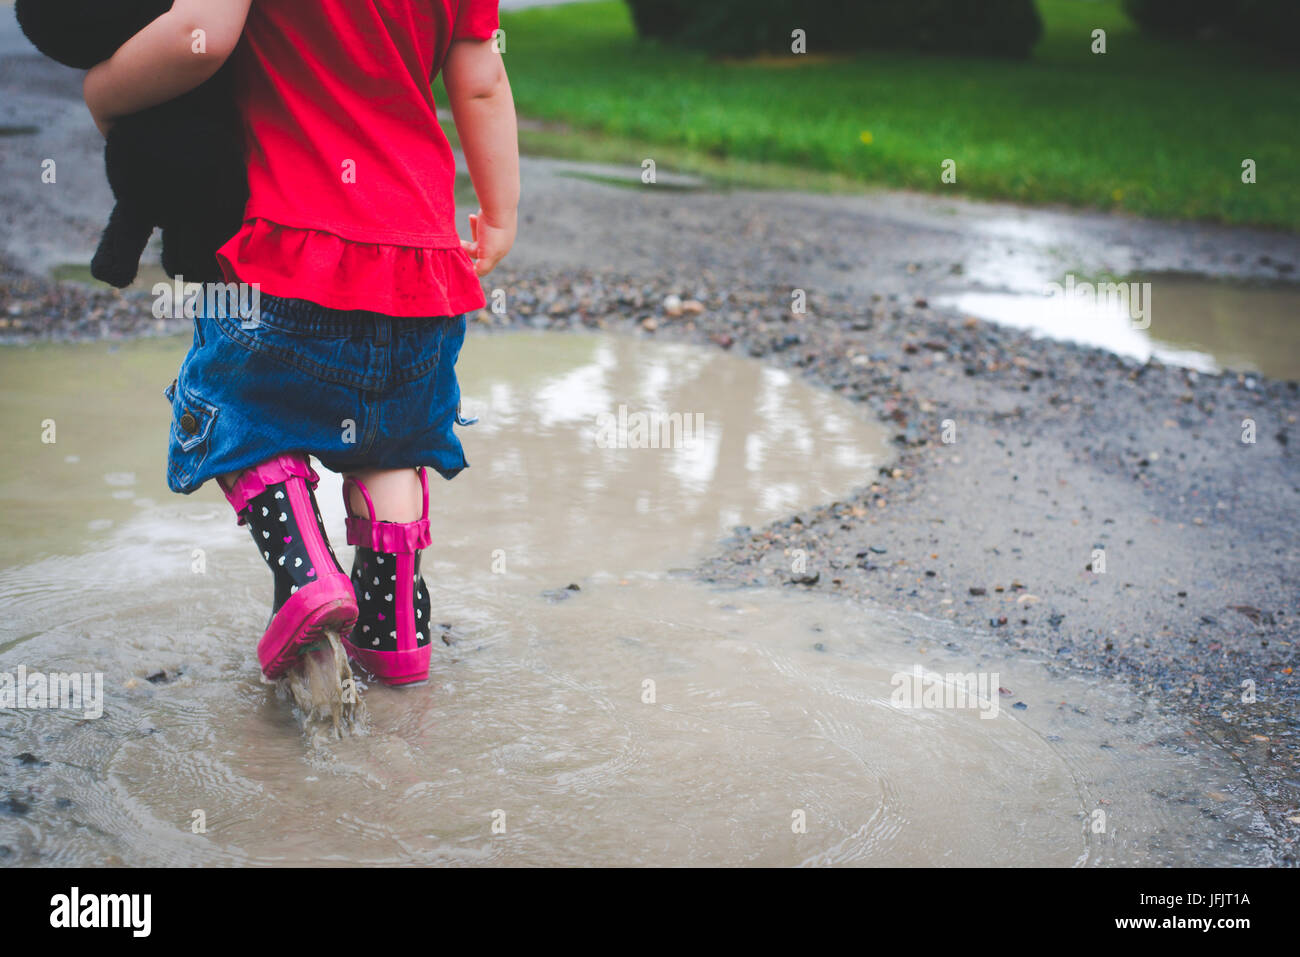 A young girl walks into a mud puddle with rain boots on wearing red and holding a small stuffed dog. Stock Photo